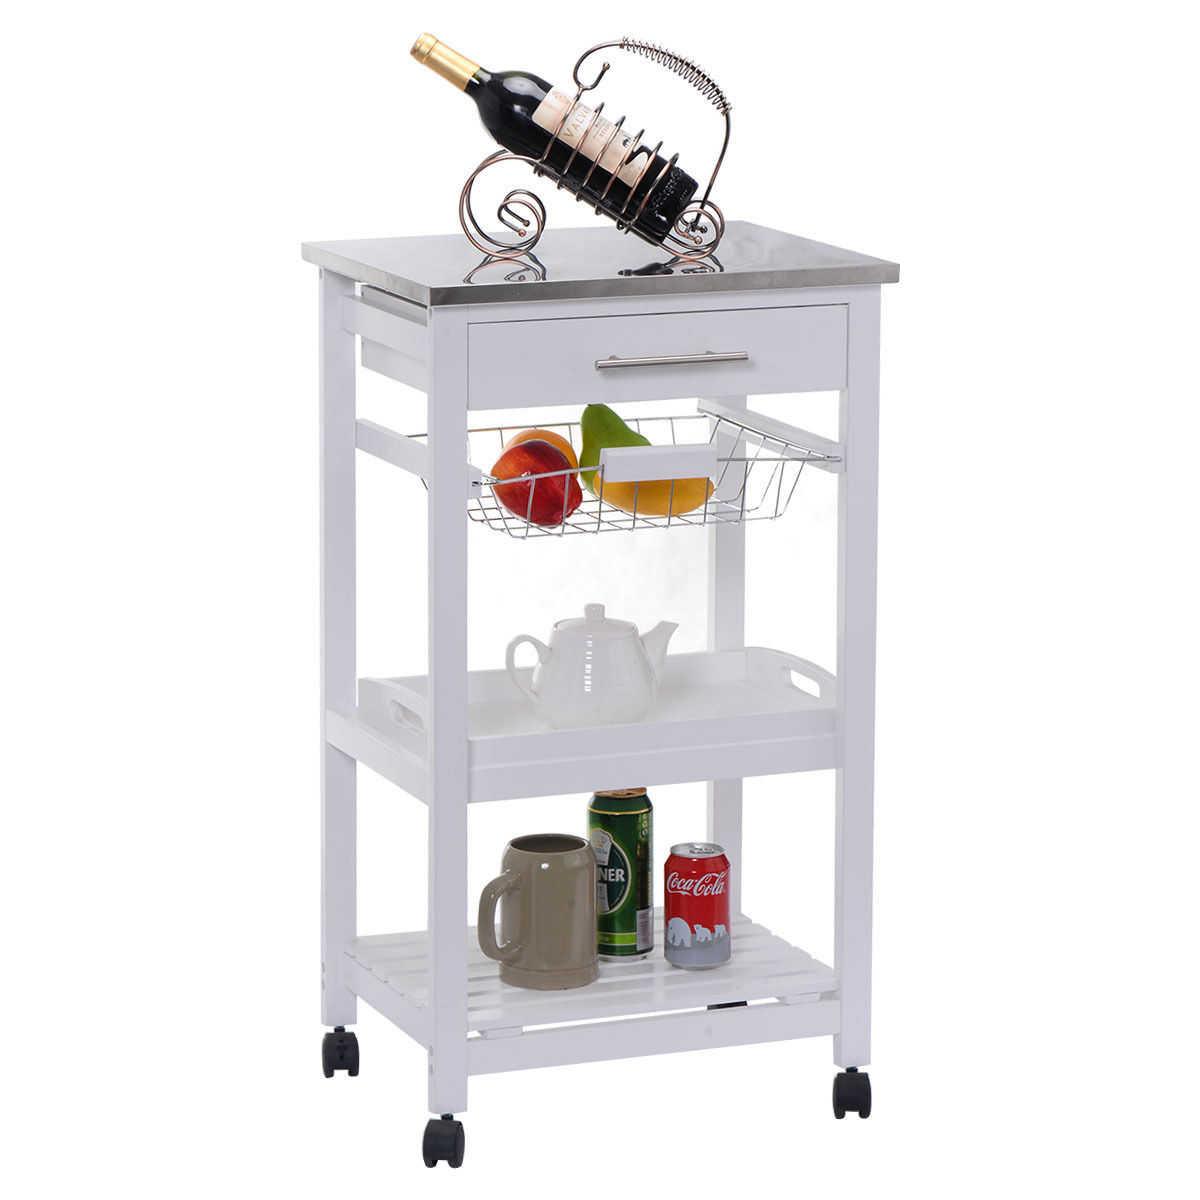 Costway Rolling Kitchen Trolley Cart Steel Top Removable Tray W/Storage Basket &Drawers